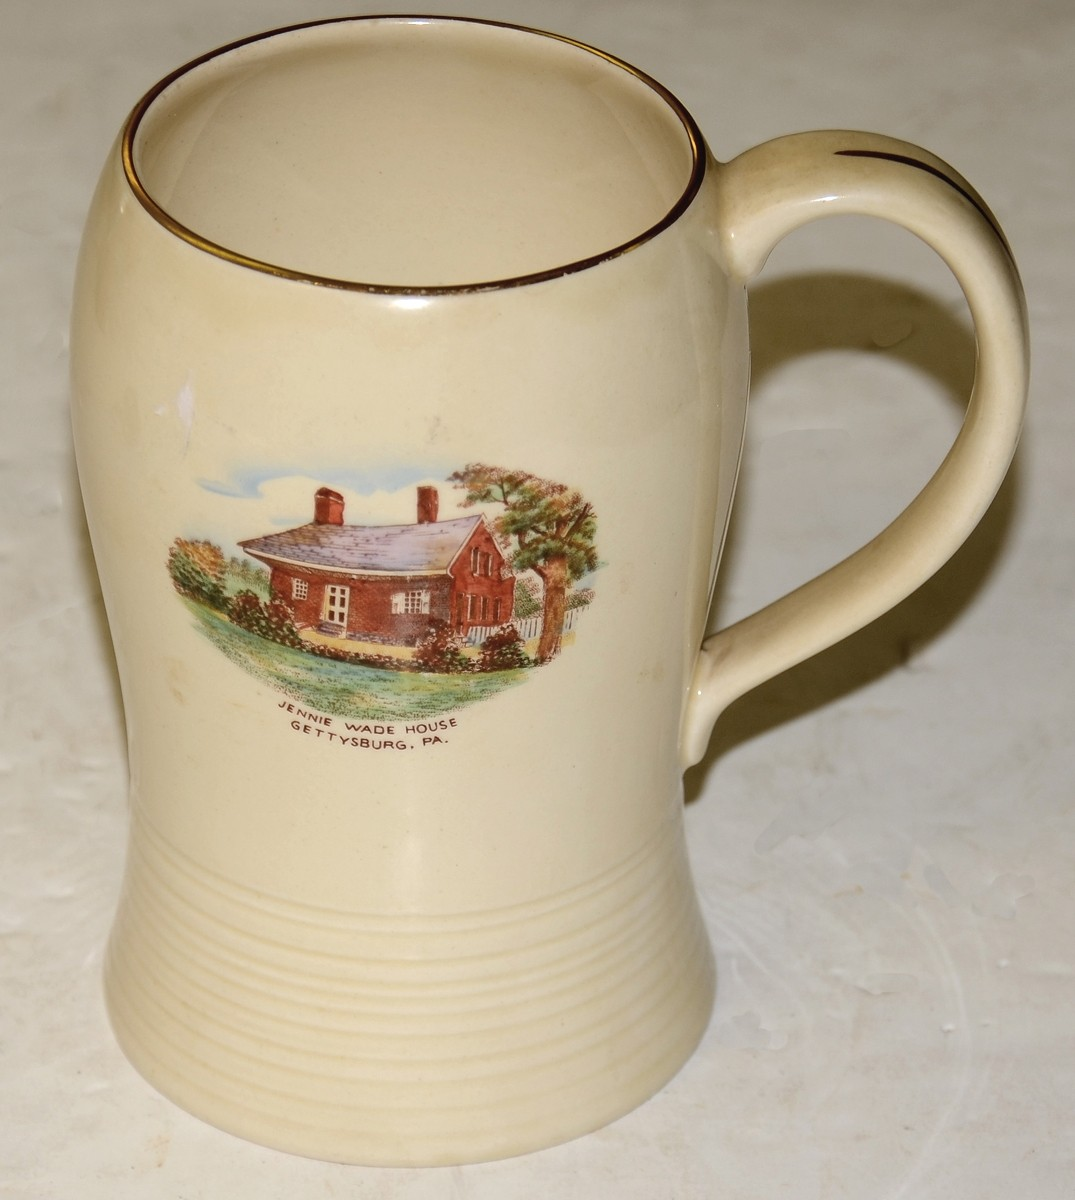 JENNY WADE HOUSE SOUVENIR BEER STEIN